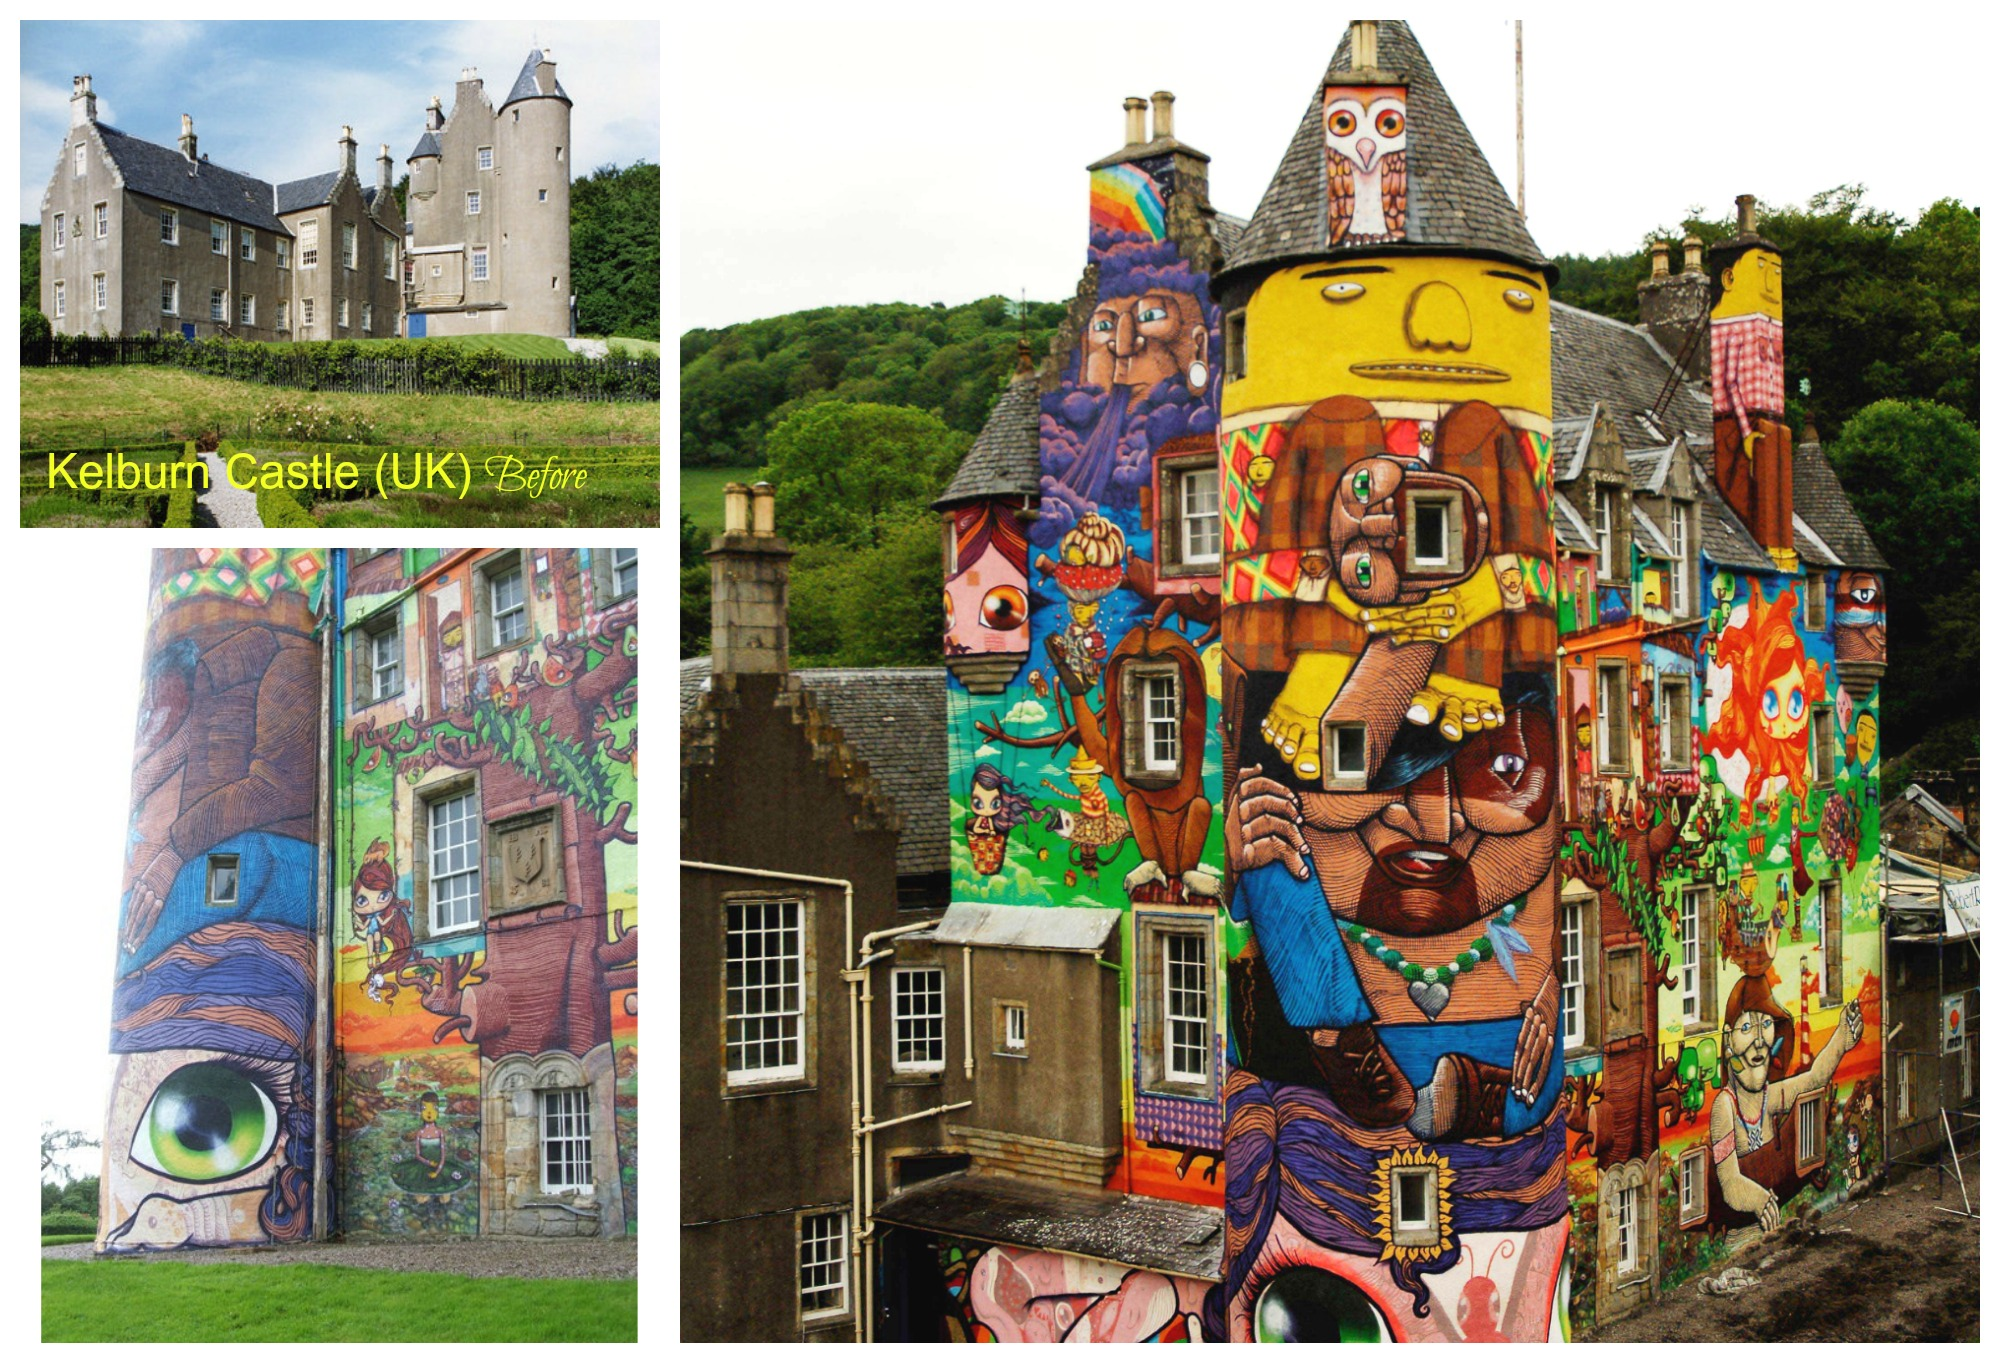 """In 2007, as part of a collaborative four person """"crew"""" from Sao Paulo, they created """"The graffiti project"""", covering parts of the kelburn castle in the united kingdom. The crew included Nina pandolfo (wife of Octavio)and   Francisco Rodrigues da Silva."""